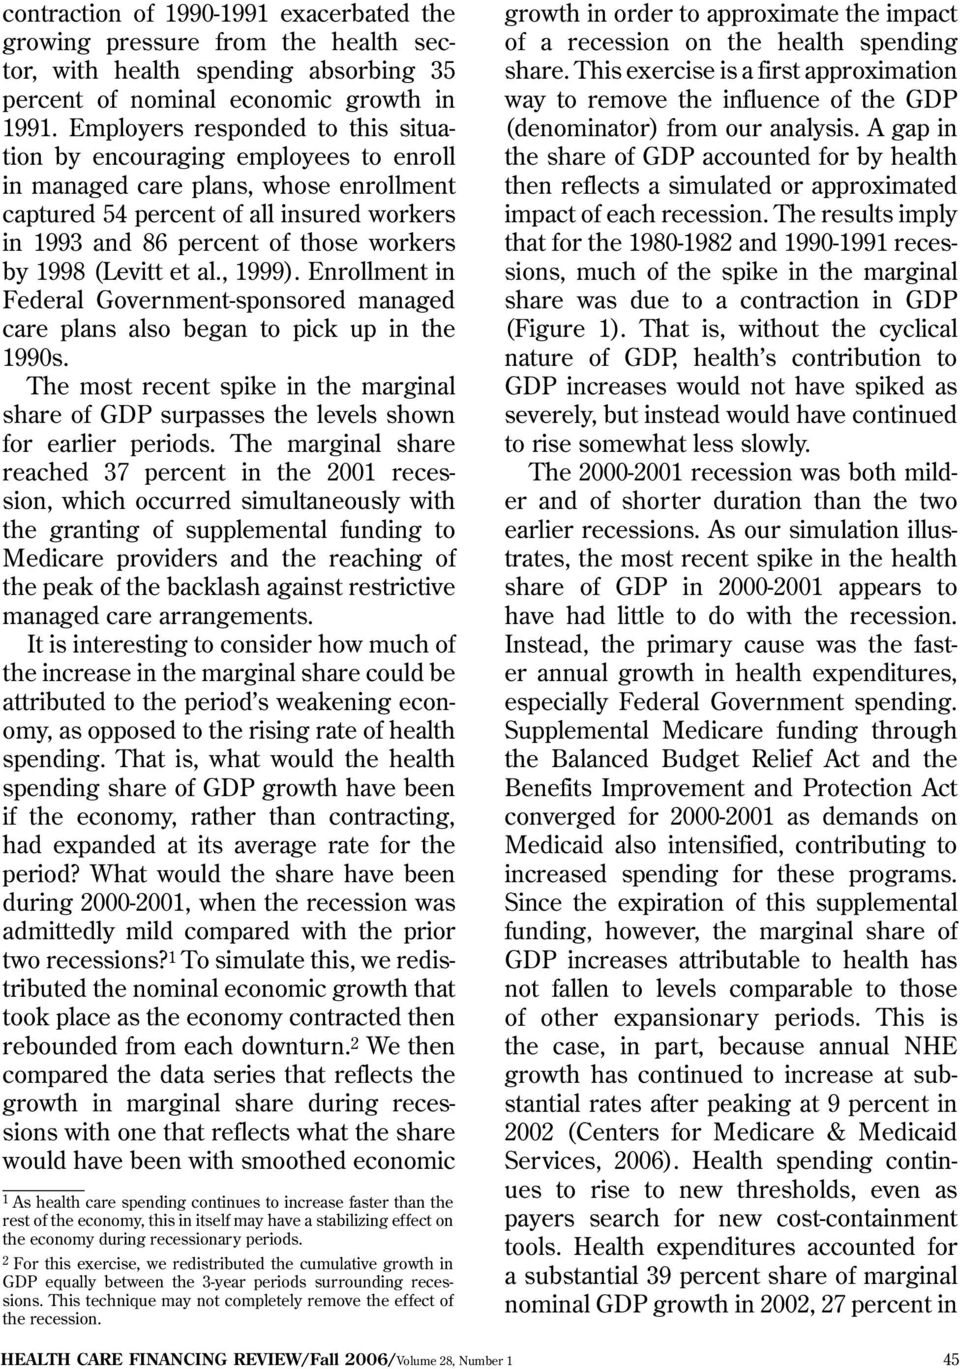 1998 (Levitt et al., 1999). Enrollment in Federal Government-sponsored managed care plans also began to pick up in the 1990s.